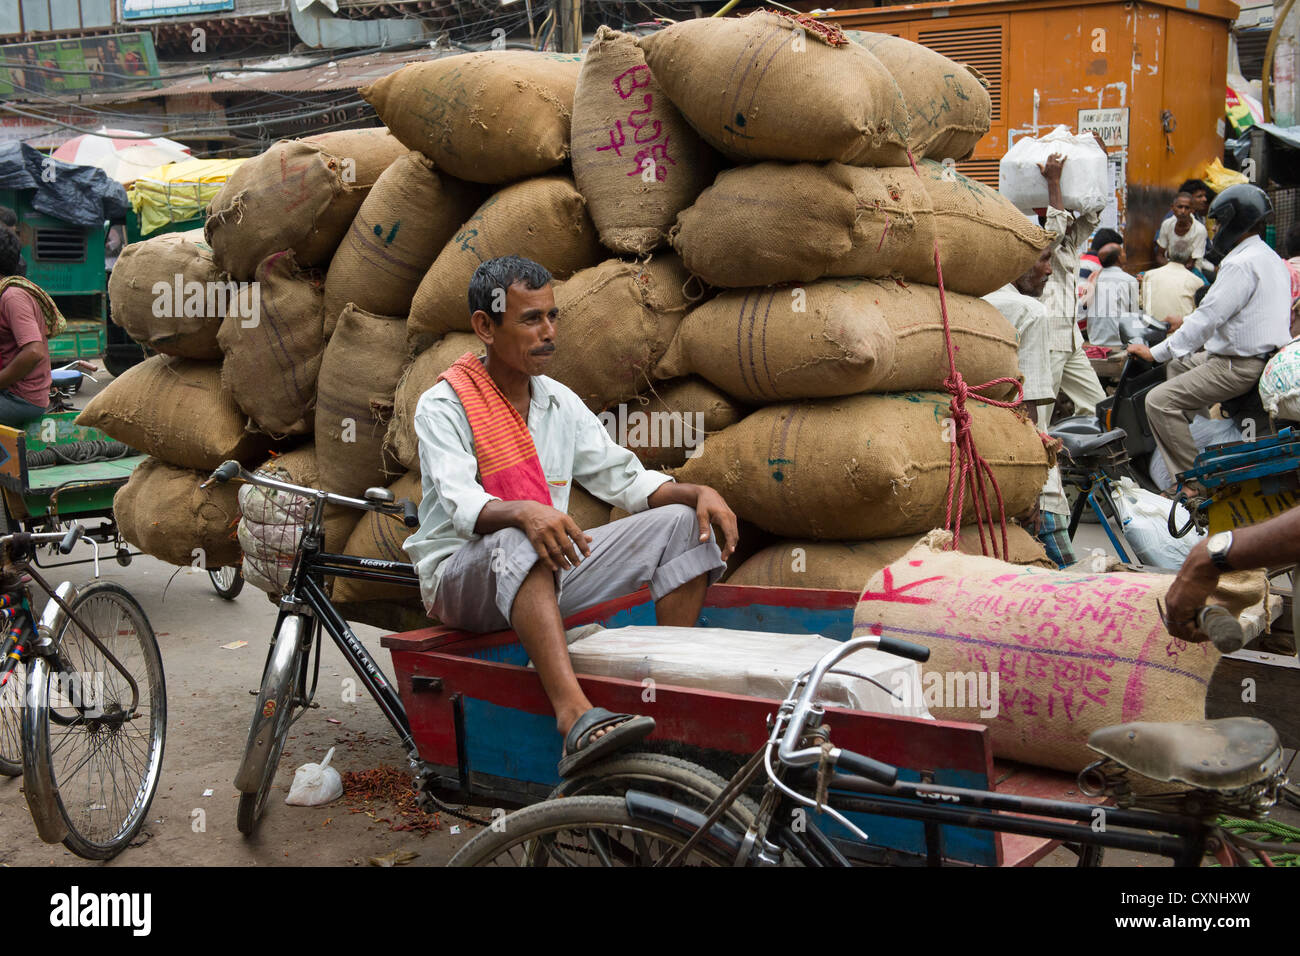 Cyclecart driver in front of a cart piled with burlap sacks on Khari Baoli Road, (Spice Market Bazaar off Chandni - Stock Image